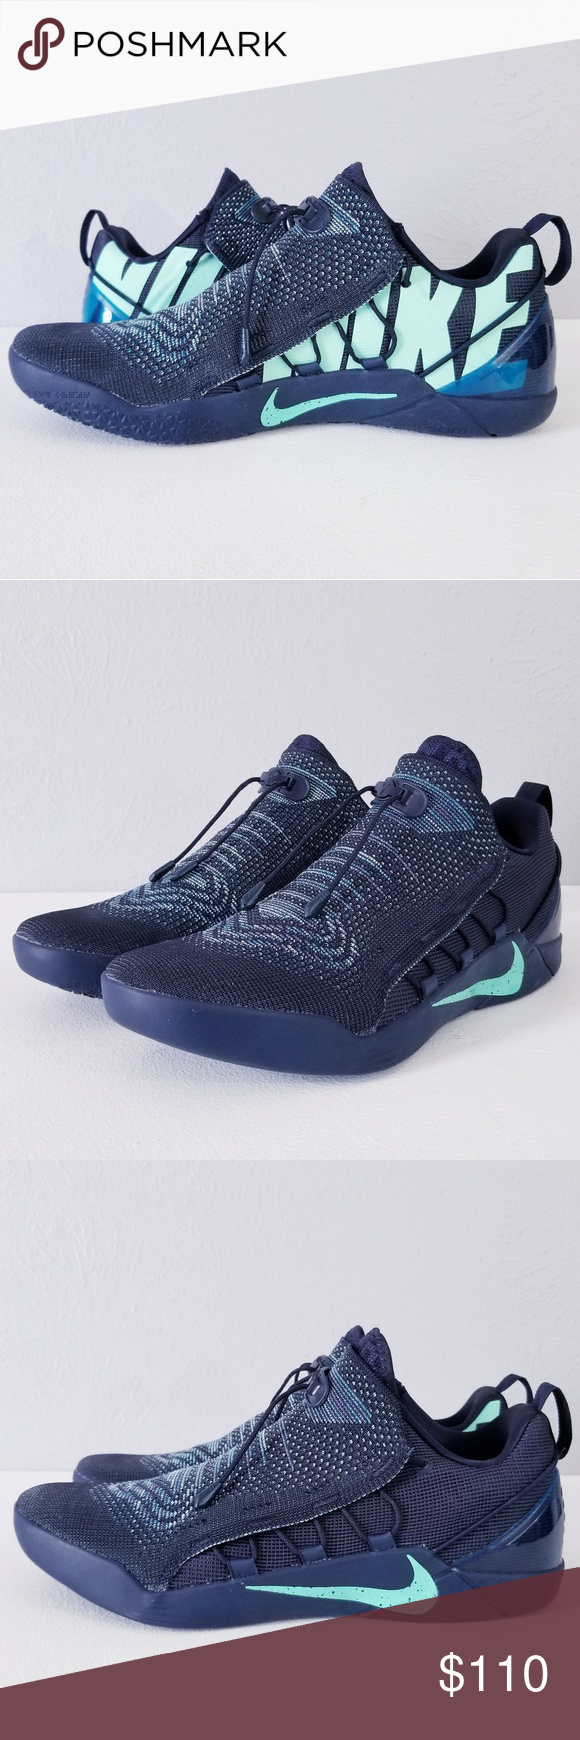 05aa0ab5ba3c Nike Kobe A.D. NXT Mambacurial College Navy Igloo BRAND NEW WITHOUT BOX - NIKE  KOBE A.D.